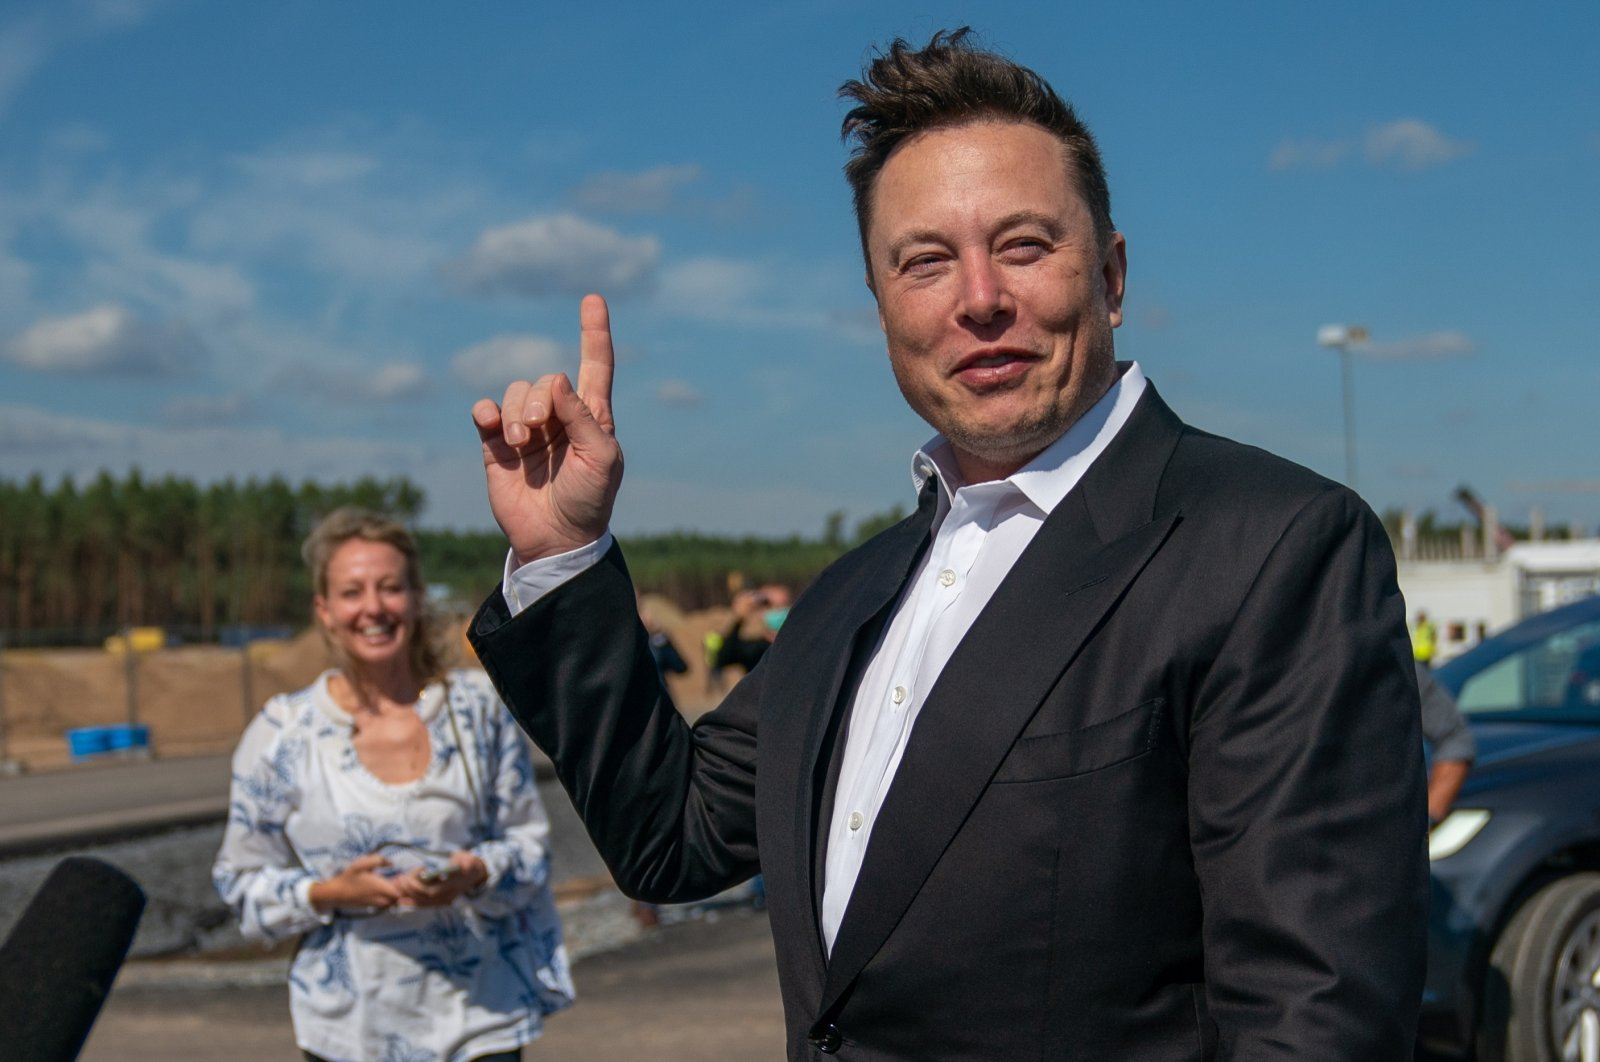 Tesla and SpaceX CEO Elon Musk (R) gives a statement at the construction site of the Tesla Giga Factory in Gruenheide near Berlin, Germany, Sept. 3, 2020. (EPA Photo)